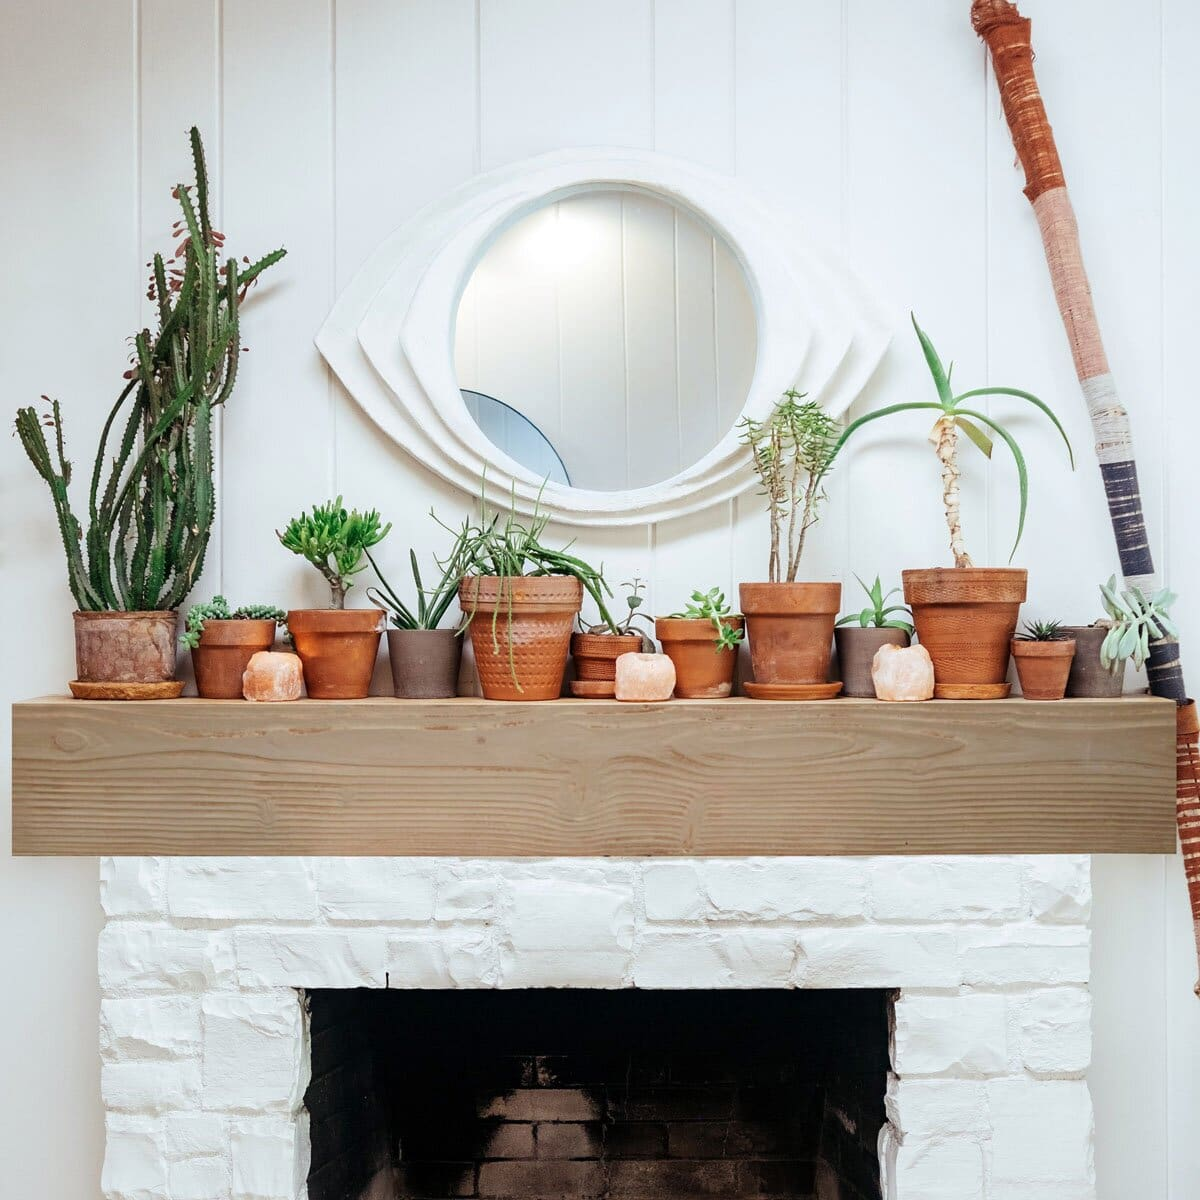 Decorate With Terracotta Potted Plants and Succulents